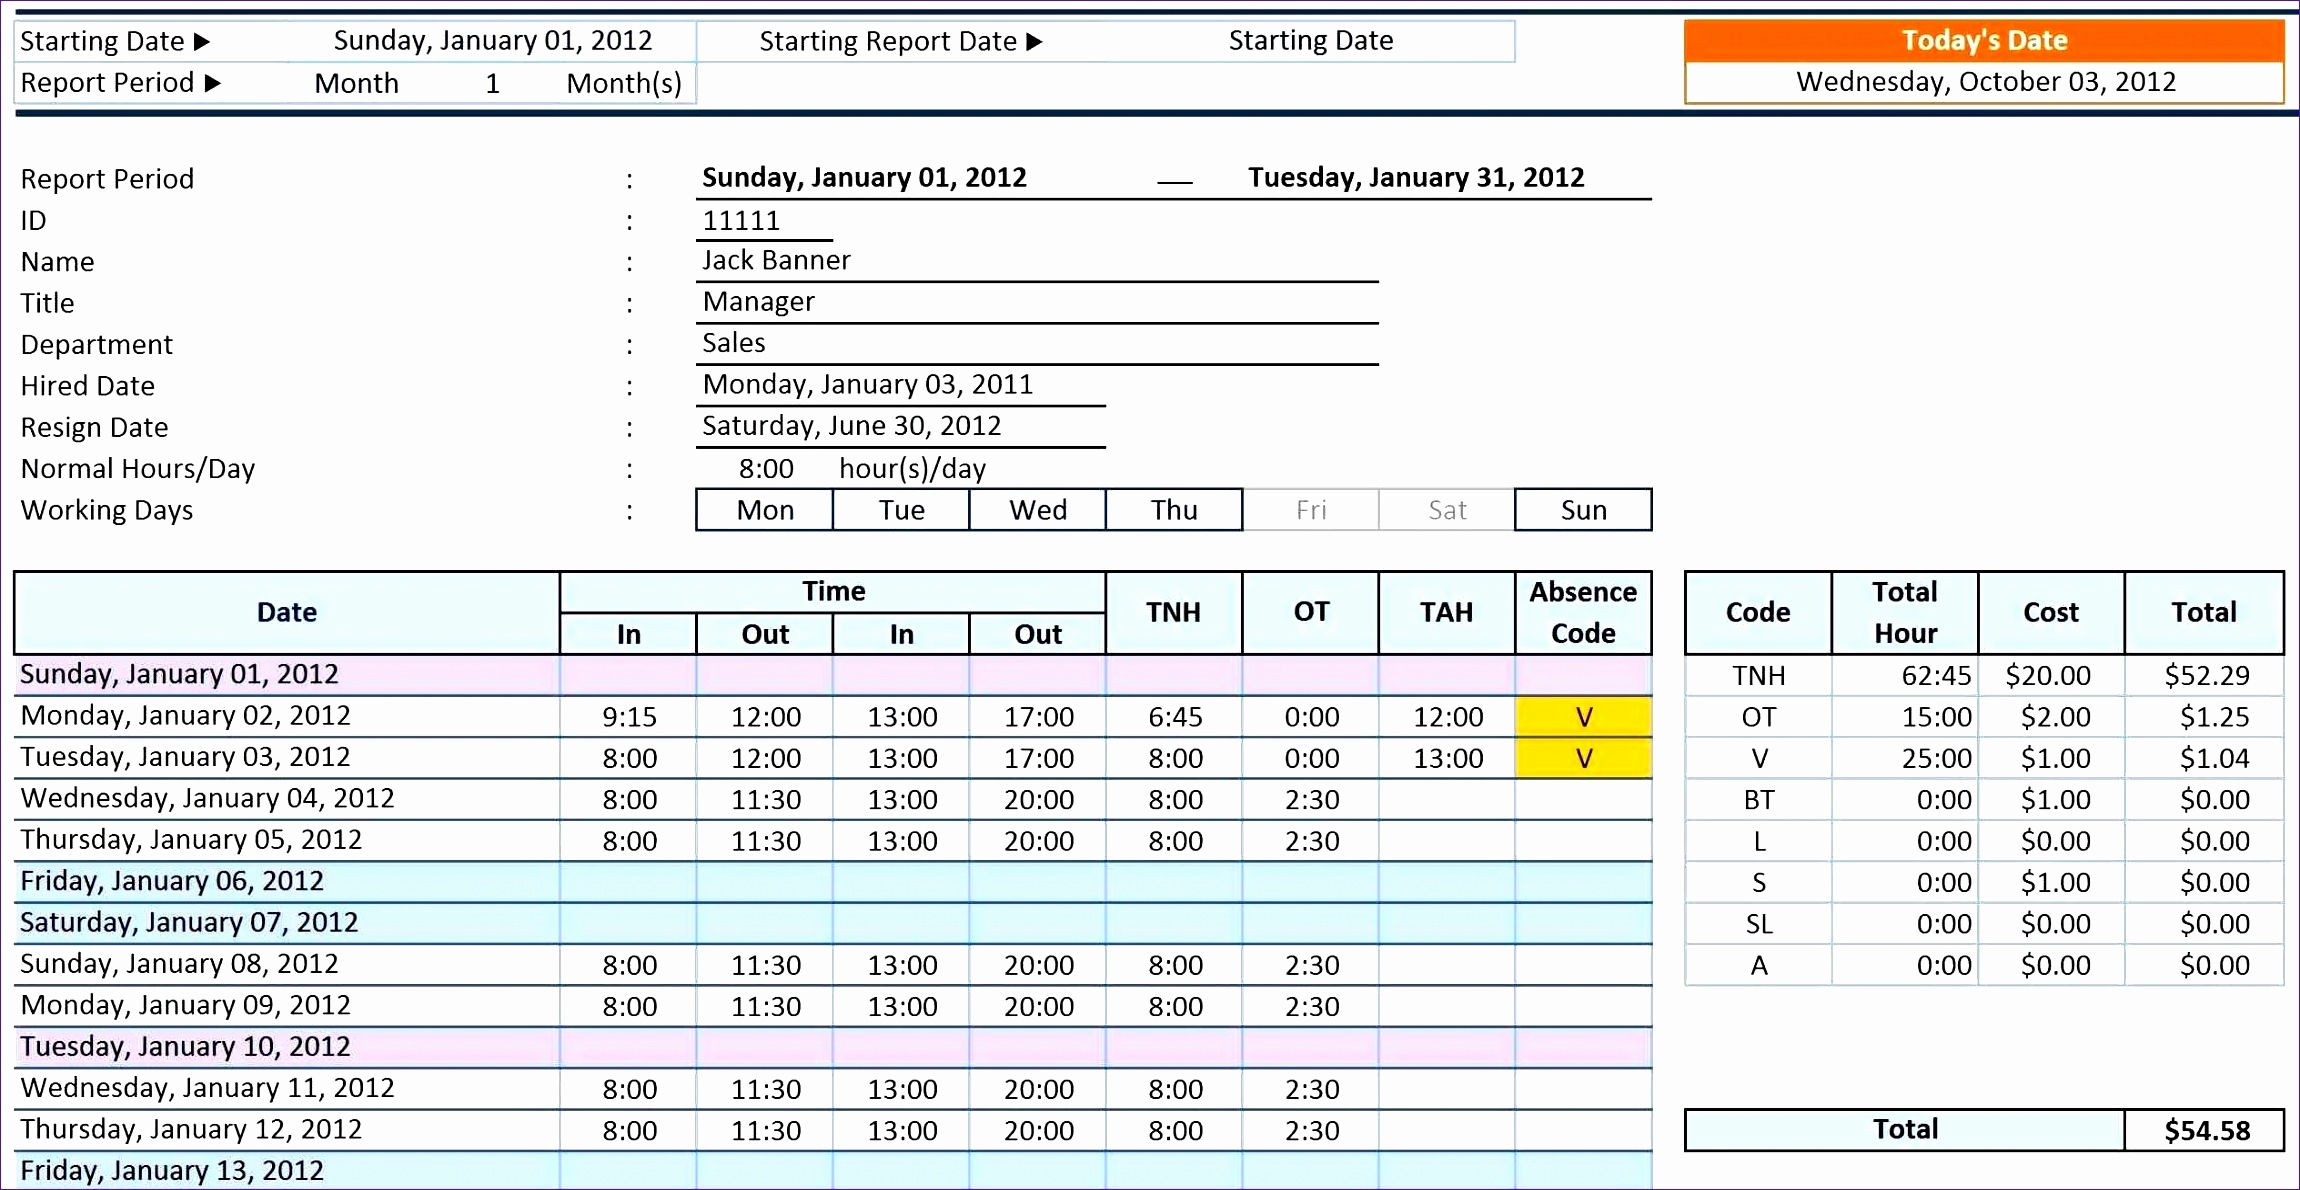 Integrated Master Schedule Template Excel Lovely Example Project Schedule Mazda Wiring Diagram Unique New Year Cards